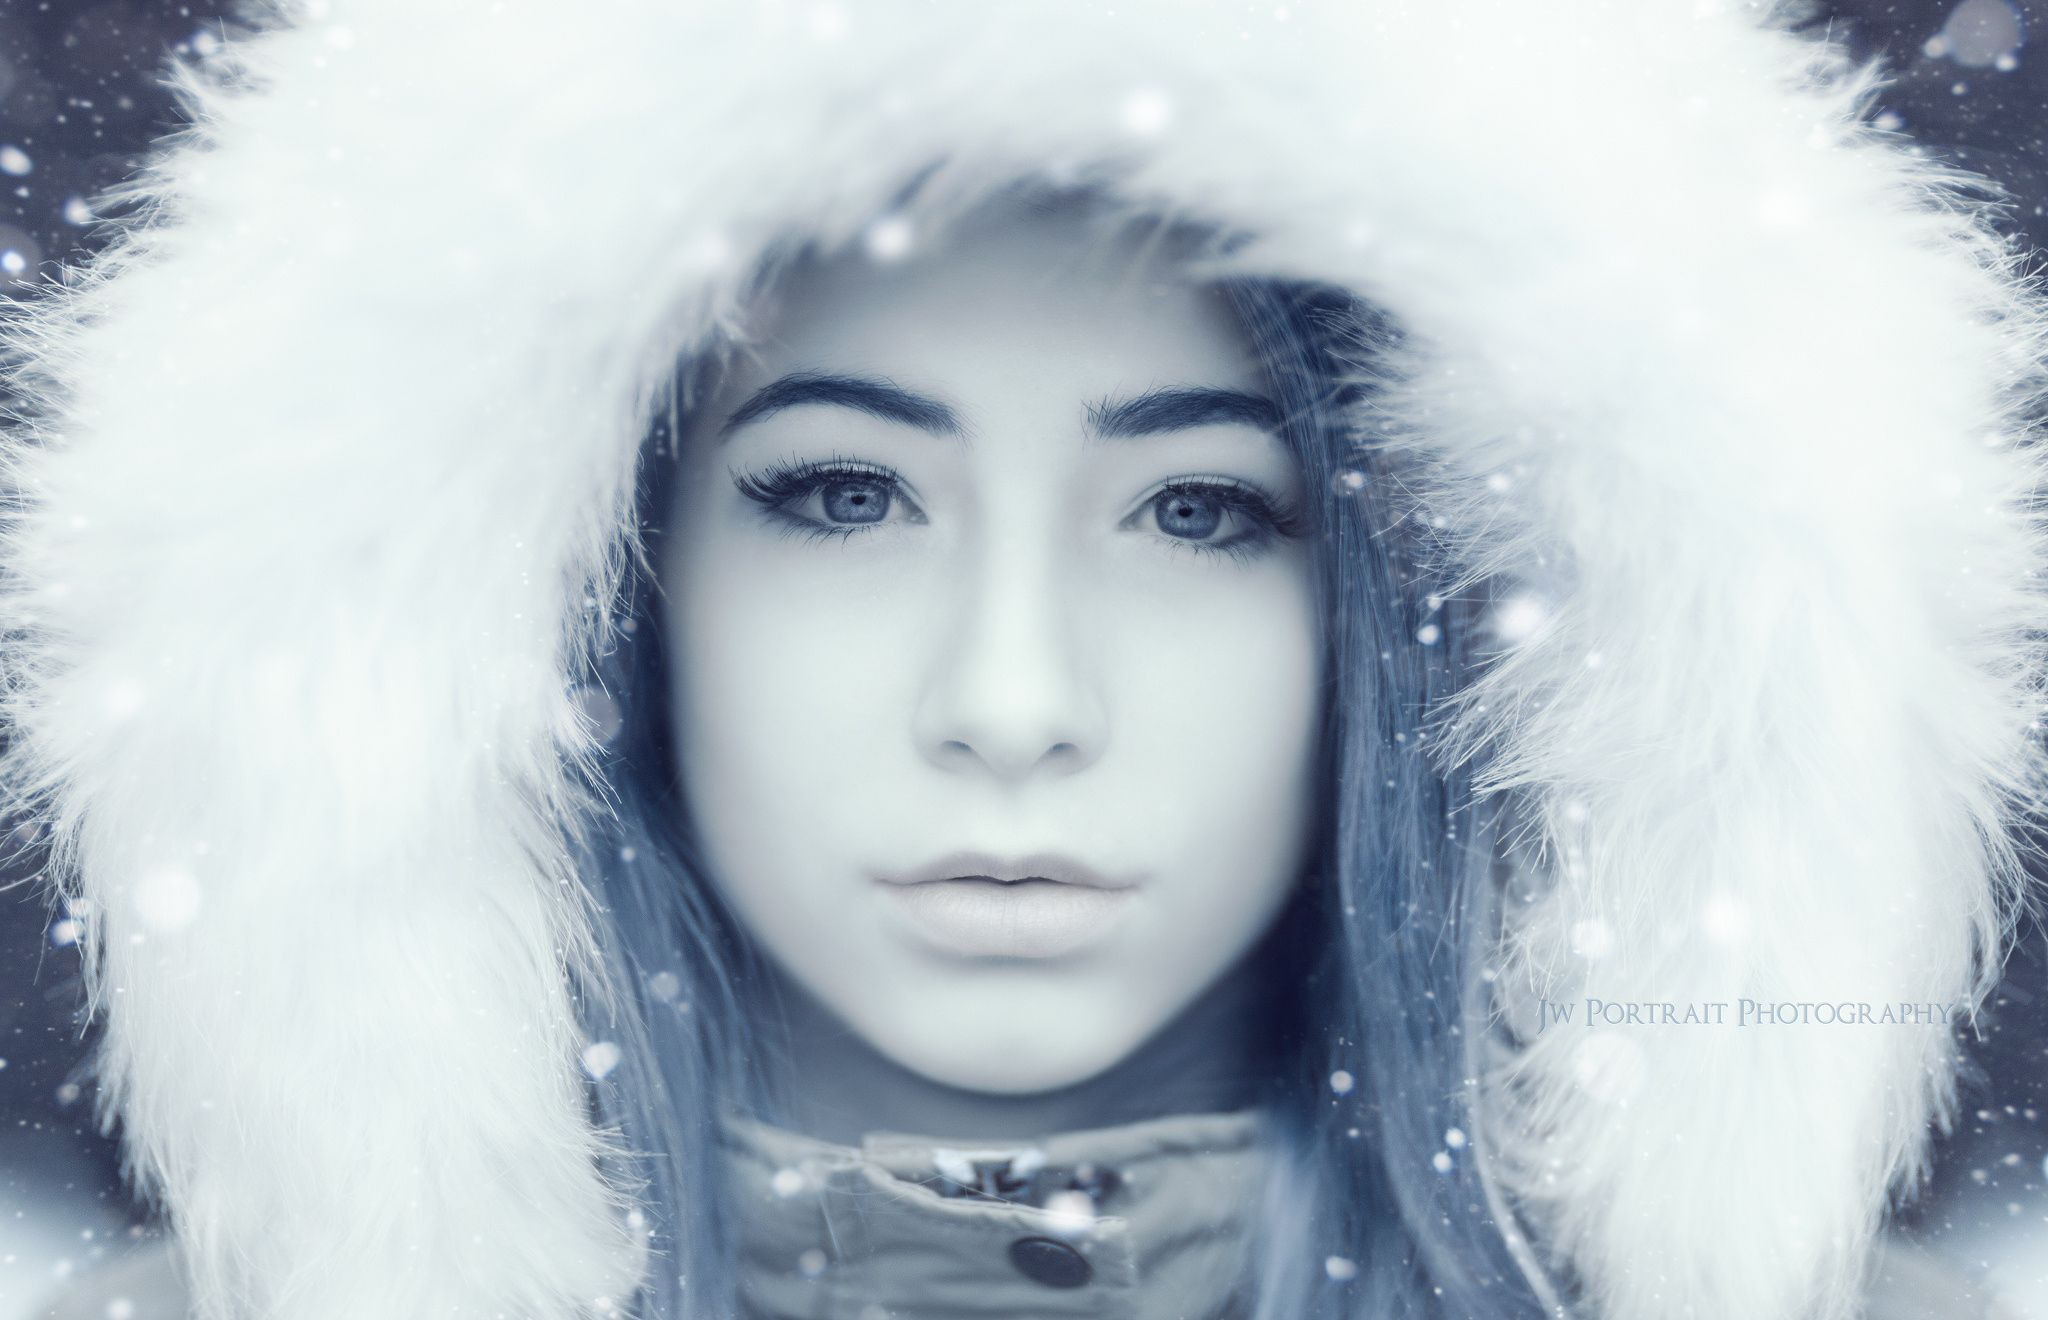 Dana - Natural Infrared Light by JW Portrait Photography - Photo 132882985 - 500px